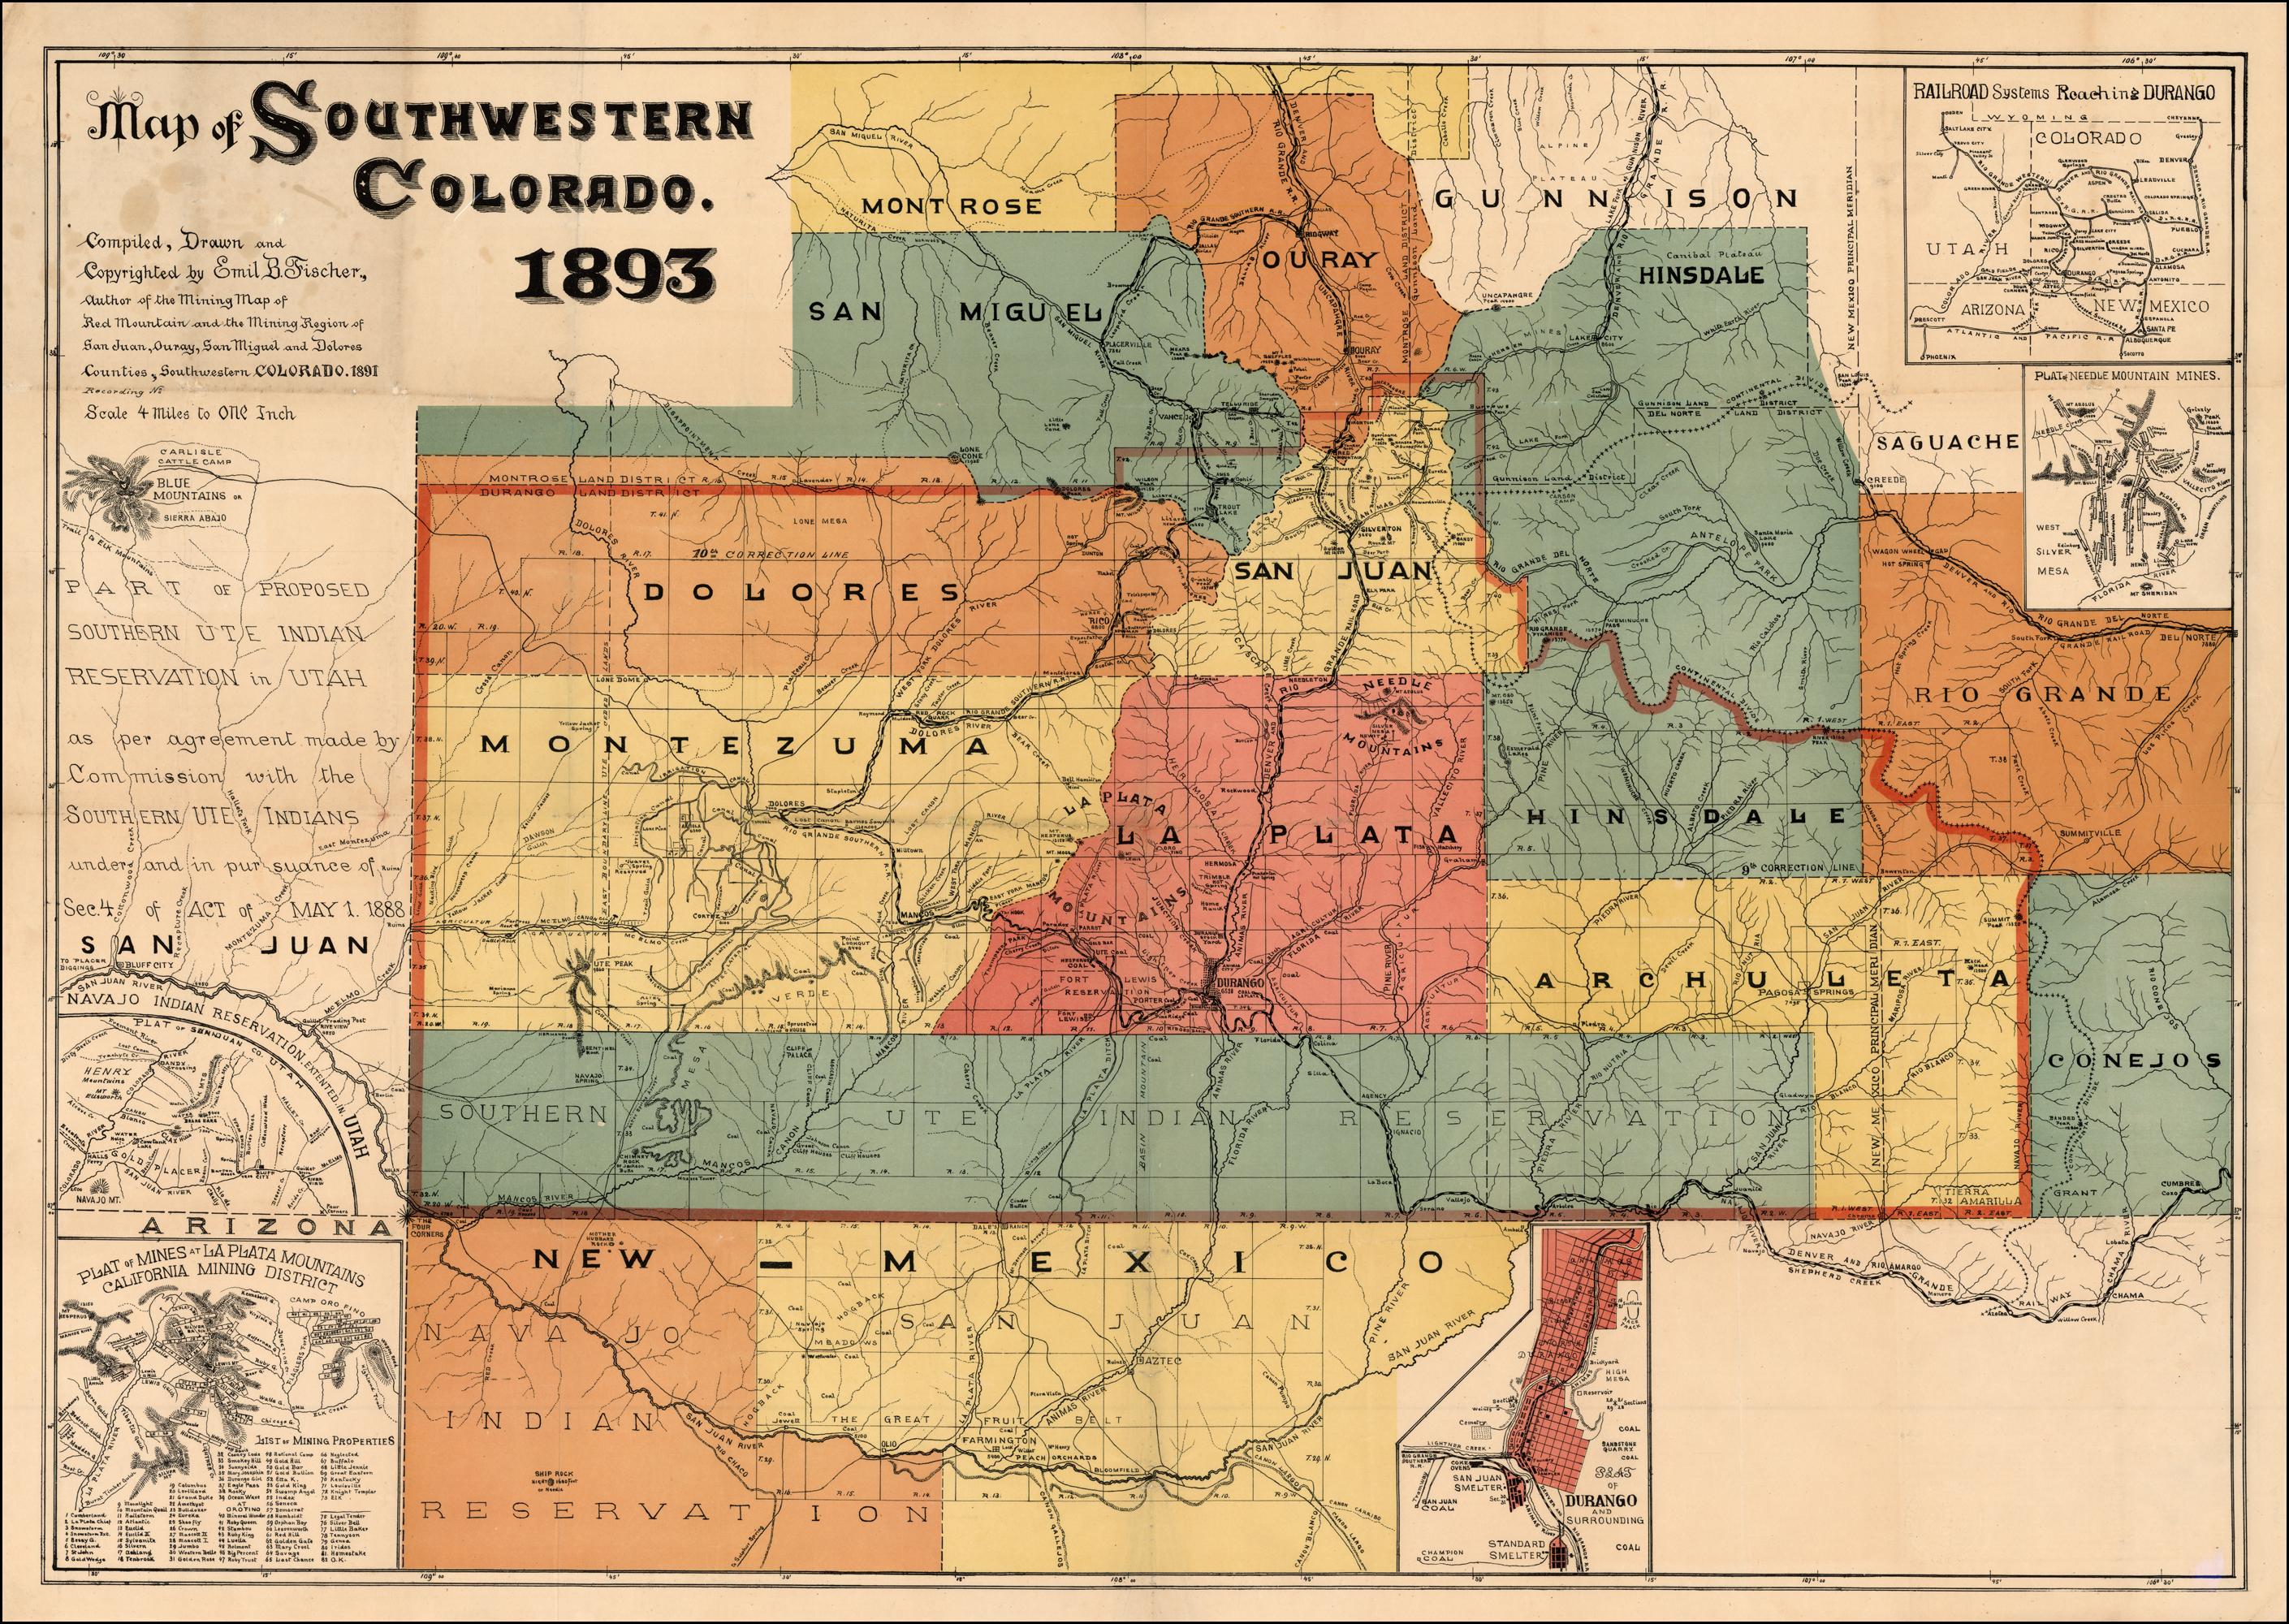 Map Of Arizona 1880.Map Of Southwestern Colorado 1893 Compiled Drawn And Copyrighted